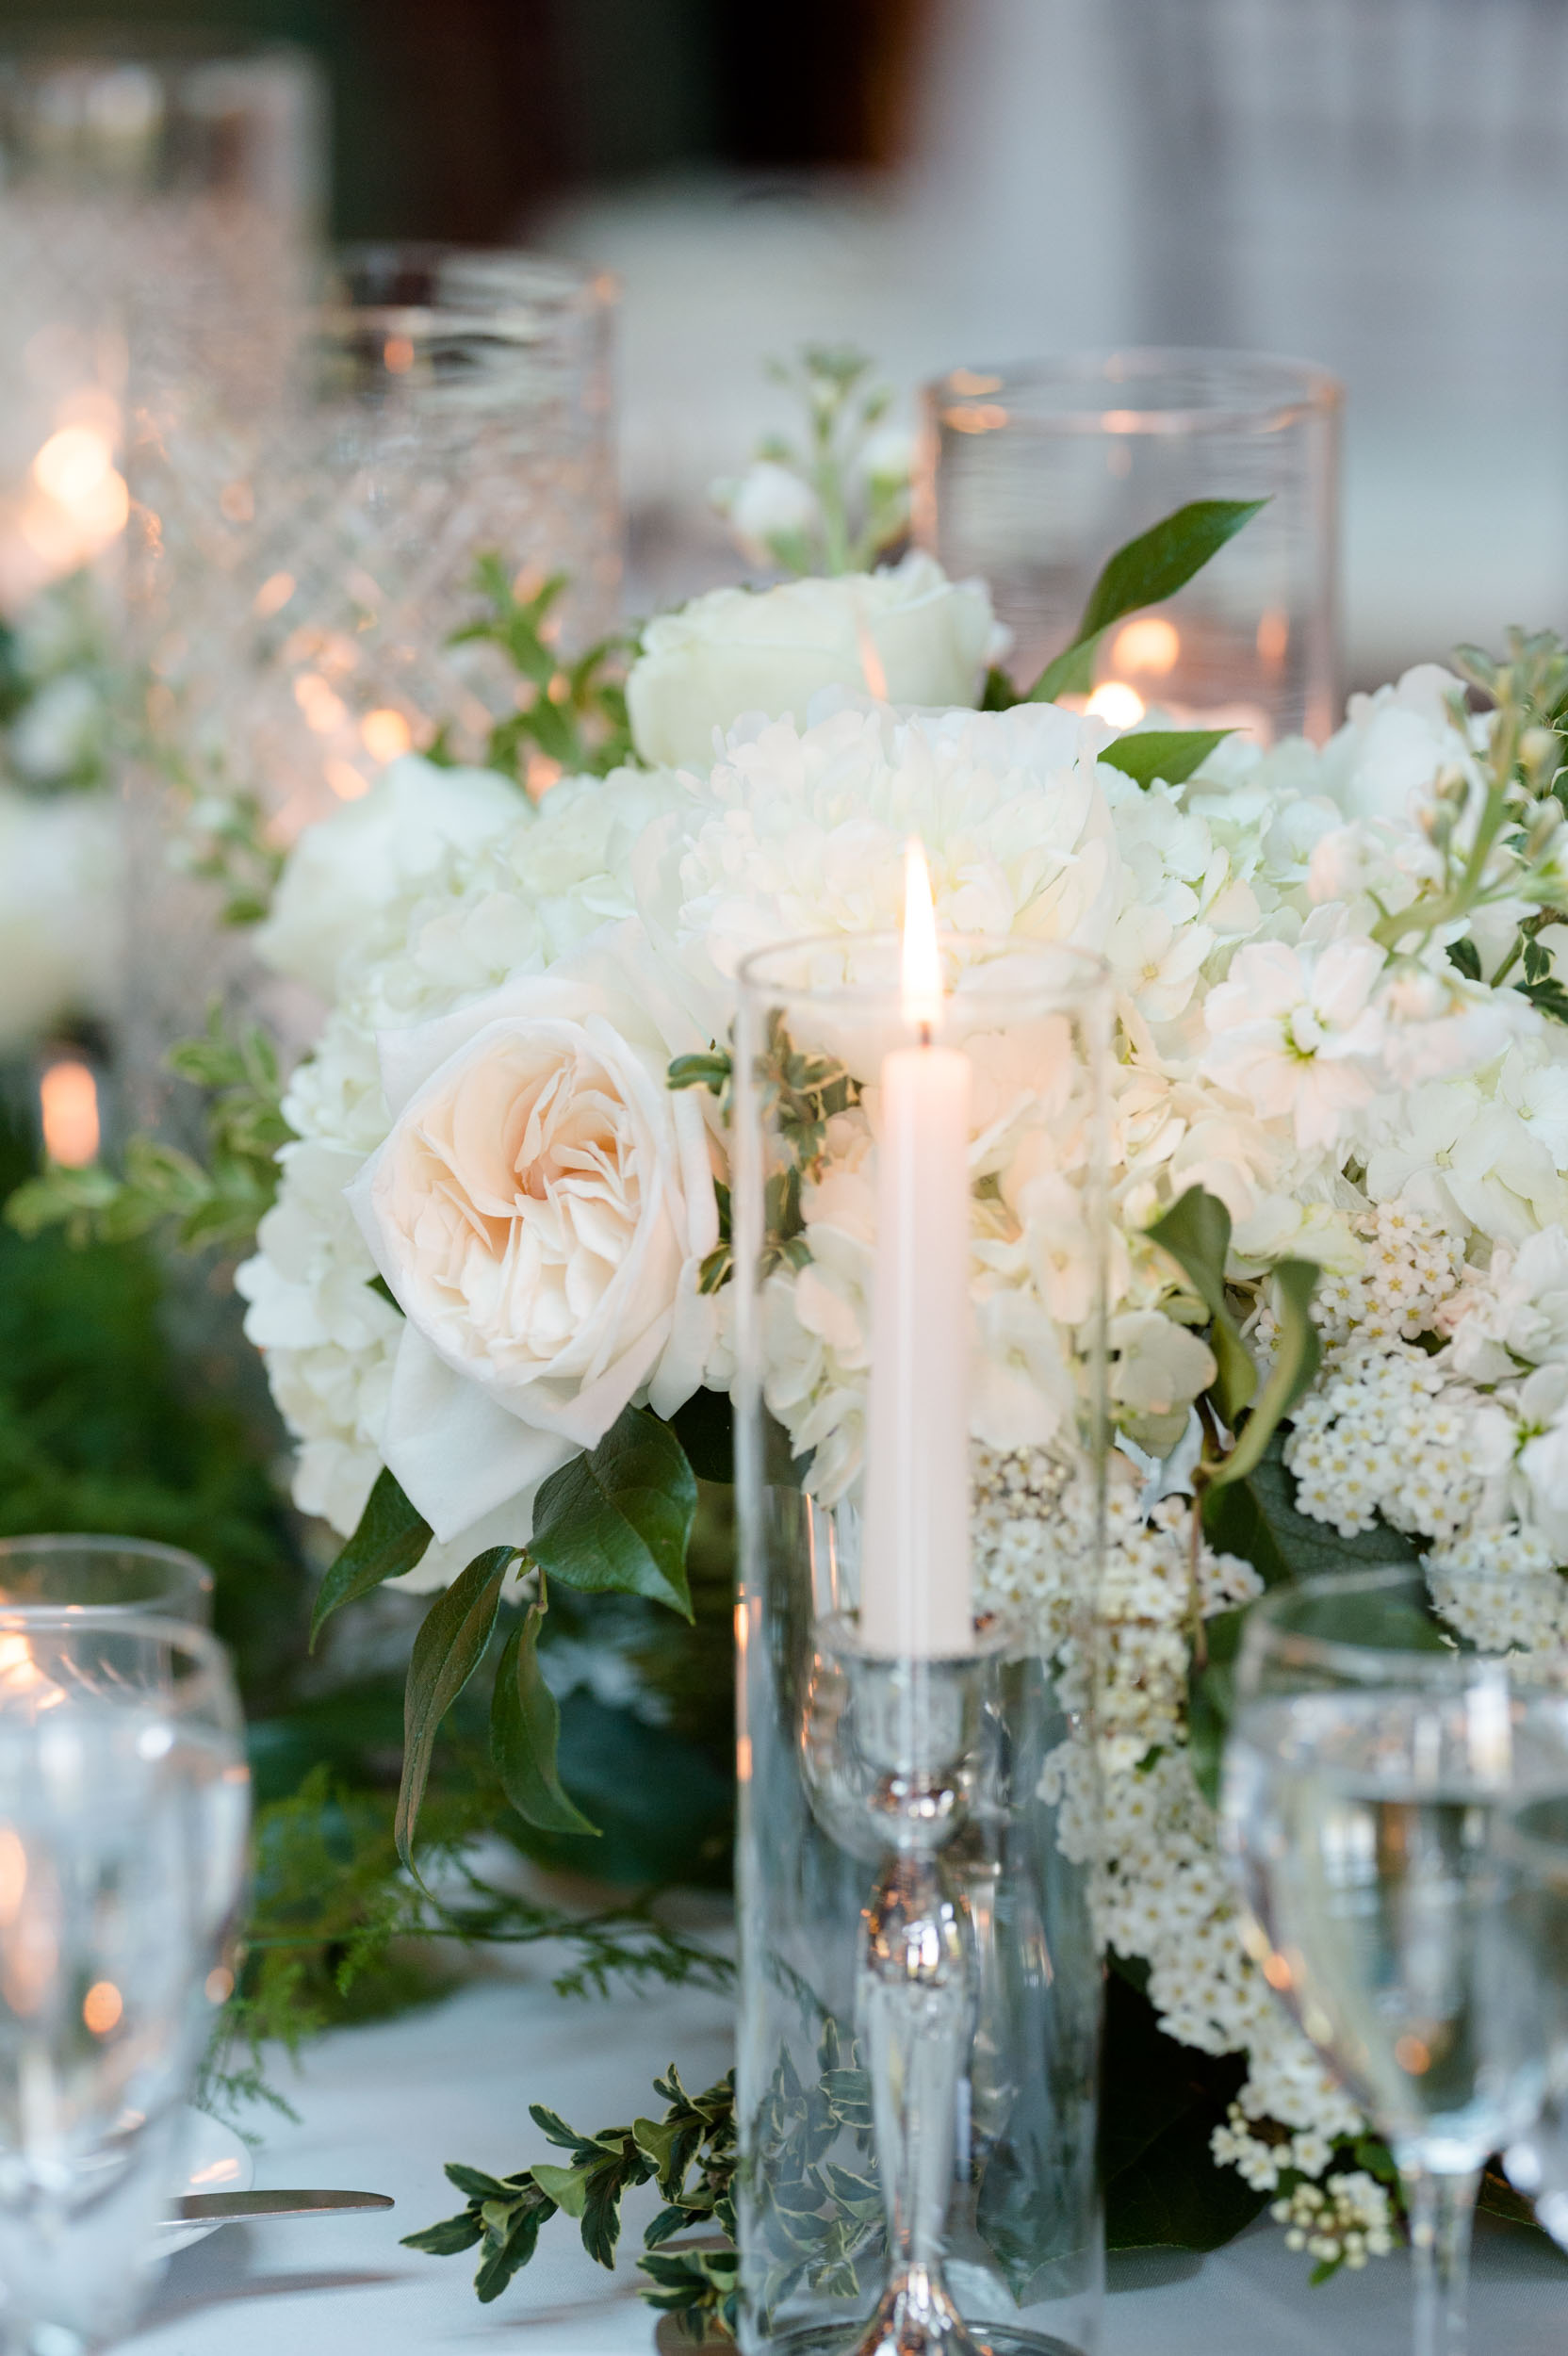 Spring wedding decor at Cafe Brauer by Stems Chicago